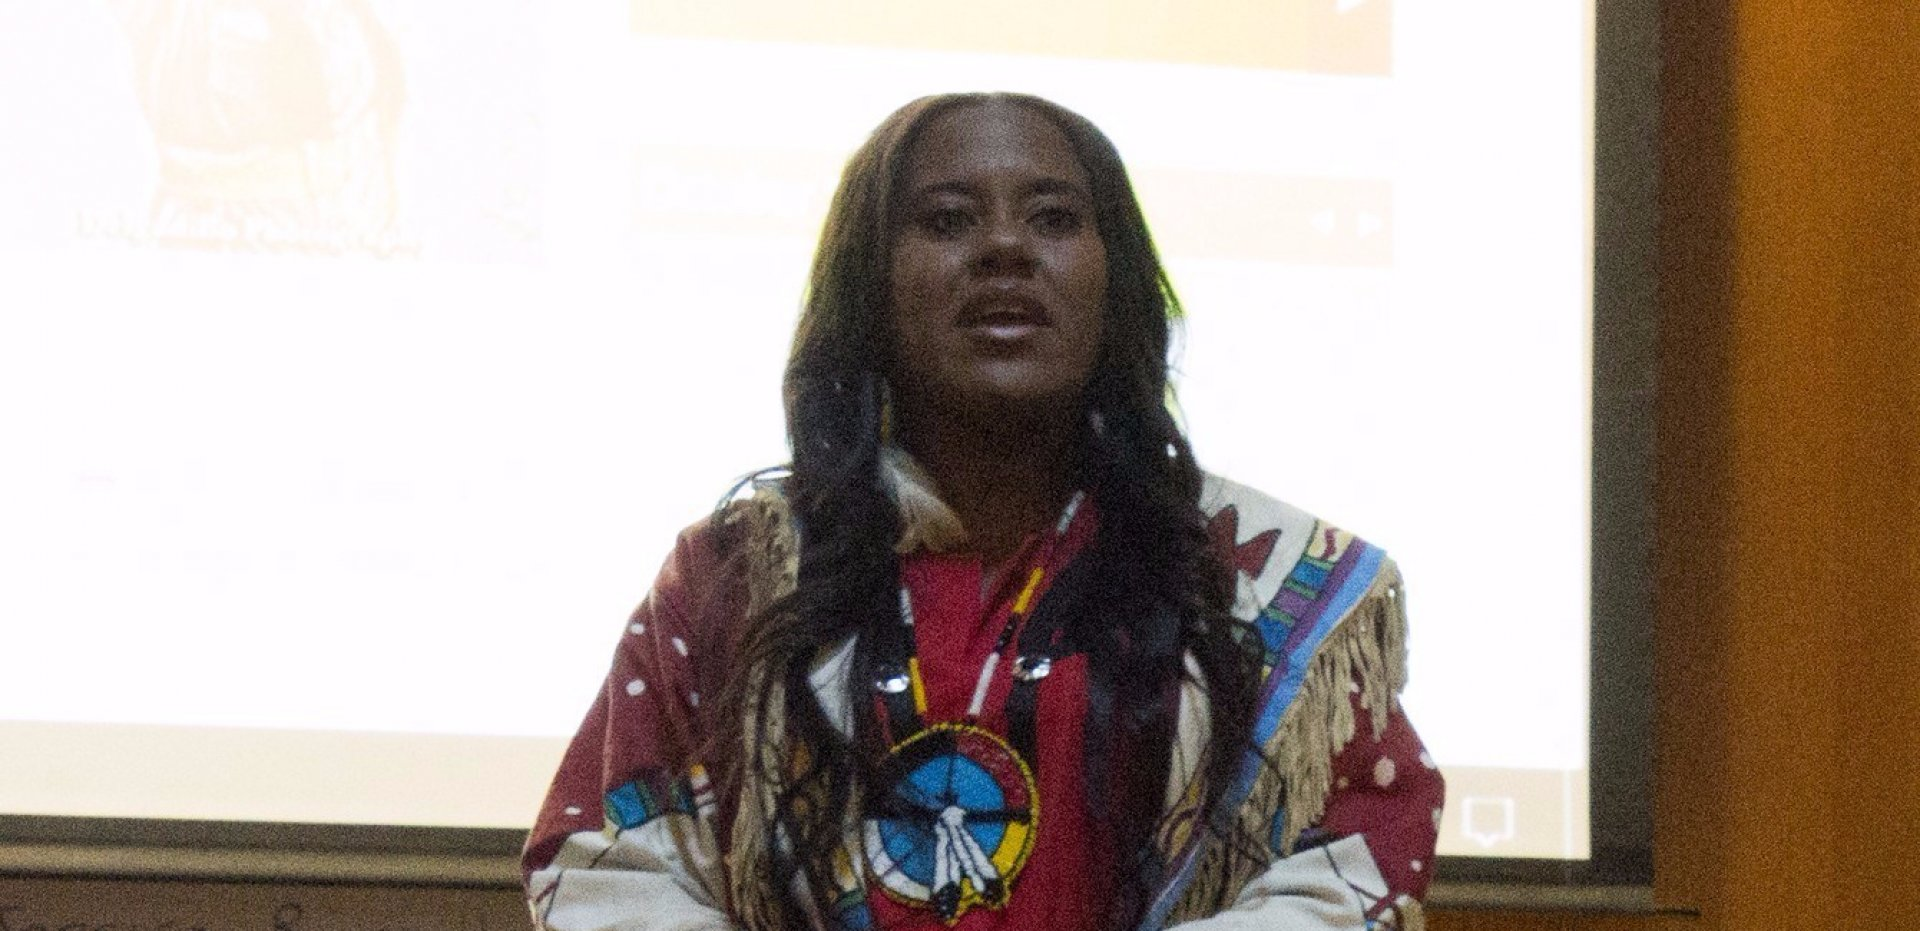 Native and African- American activist YoNasDa LoneWolf Hill speaking during Indigenous People's Week at Humboldt State University Oct. 9-16, 2017. File photo by Robert Brown